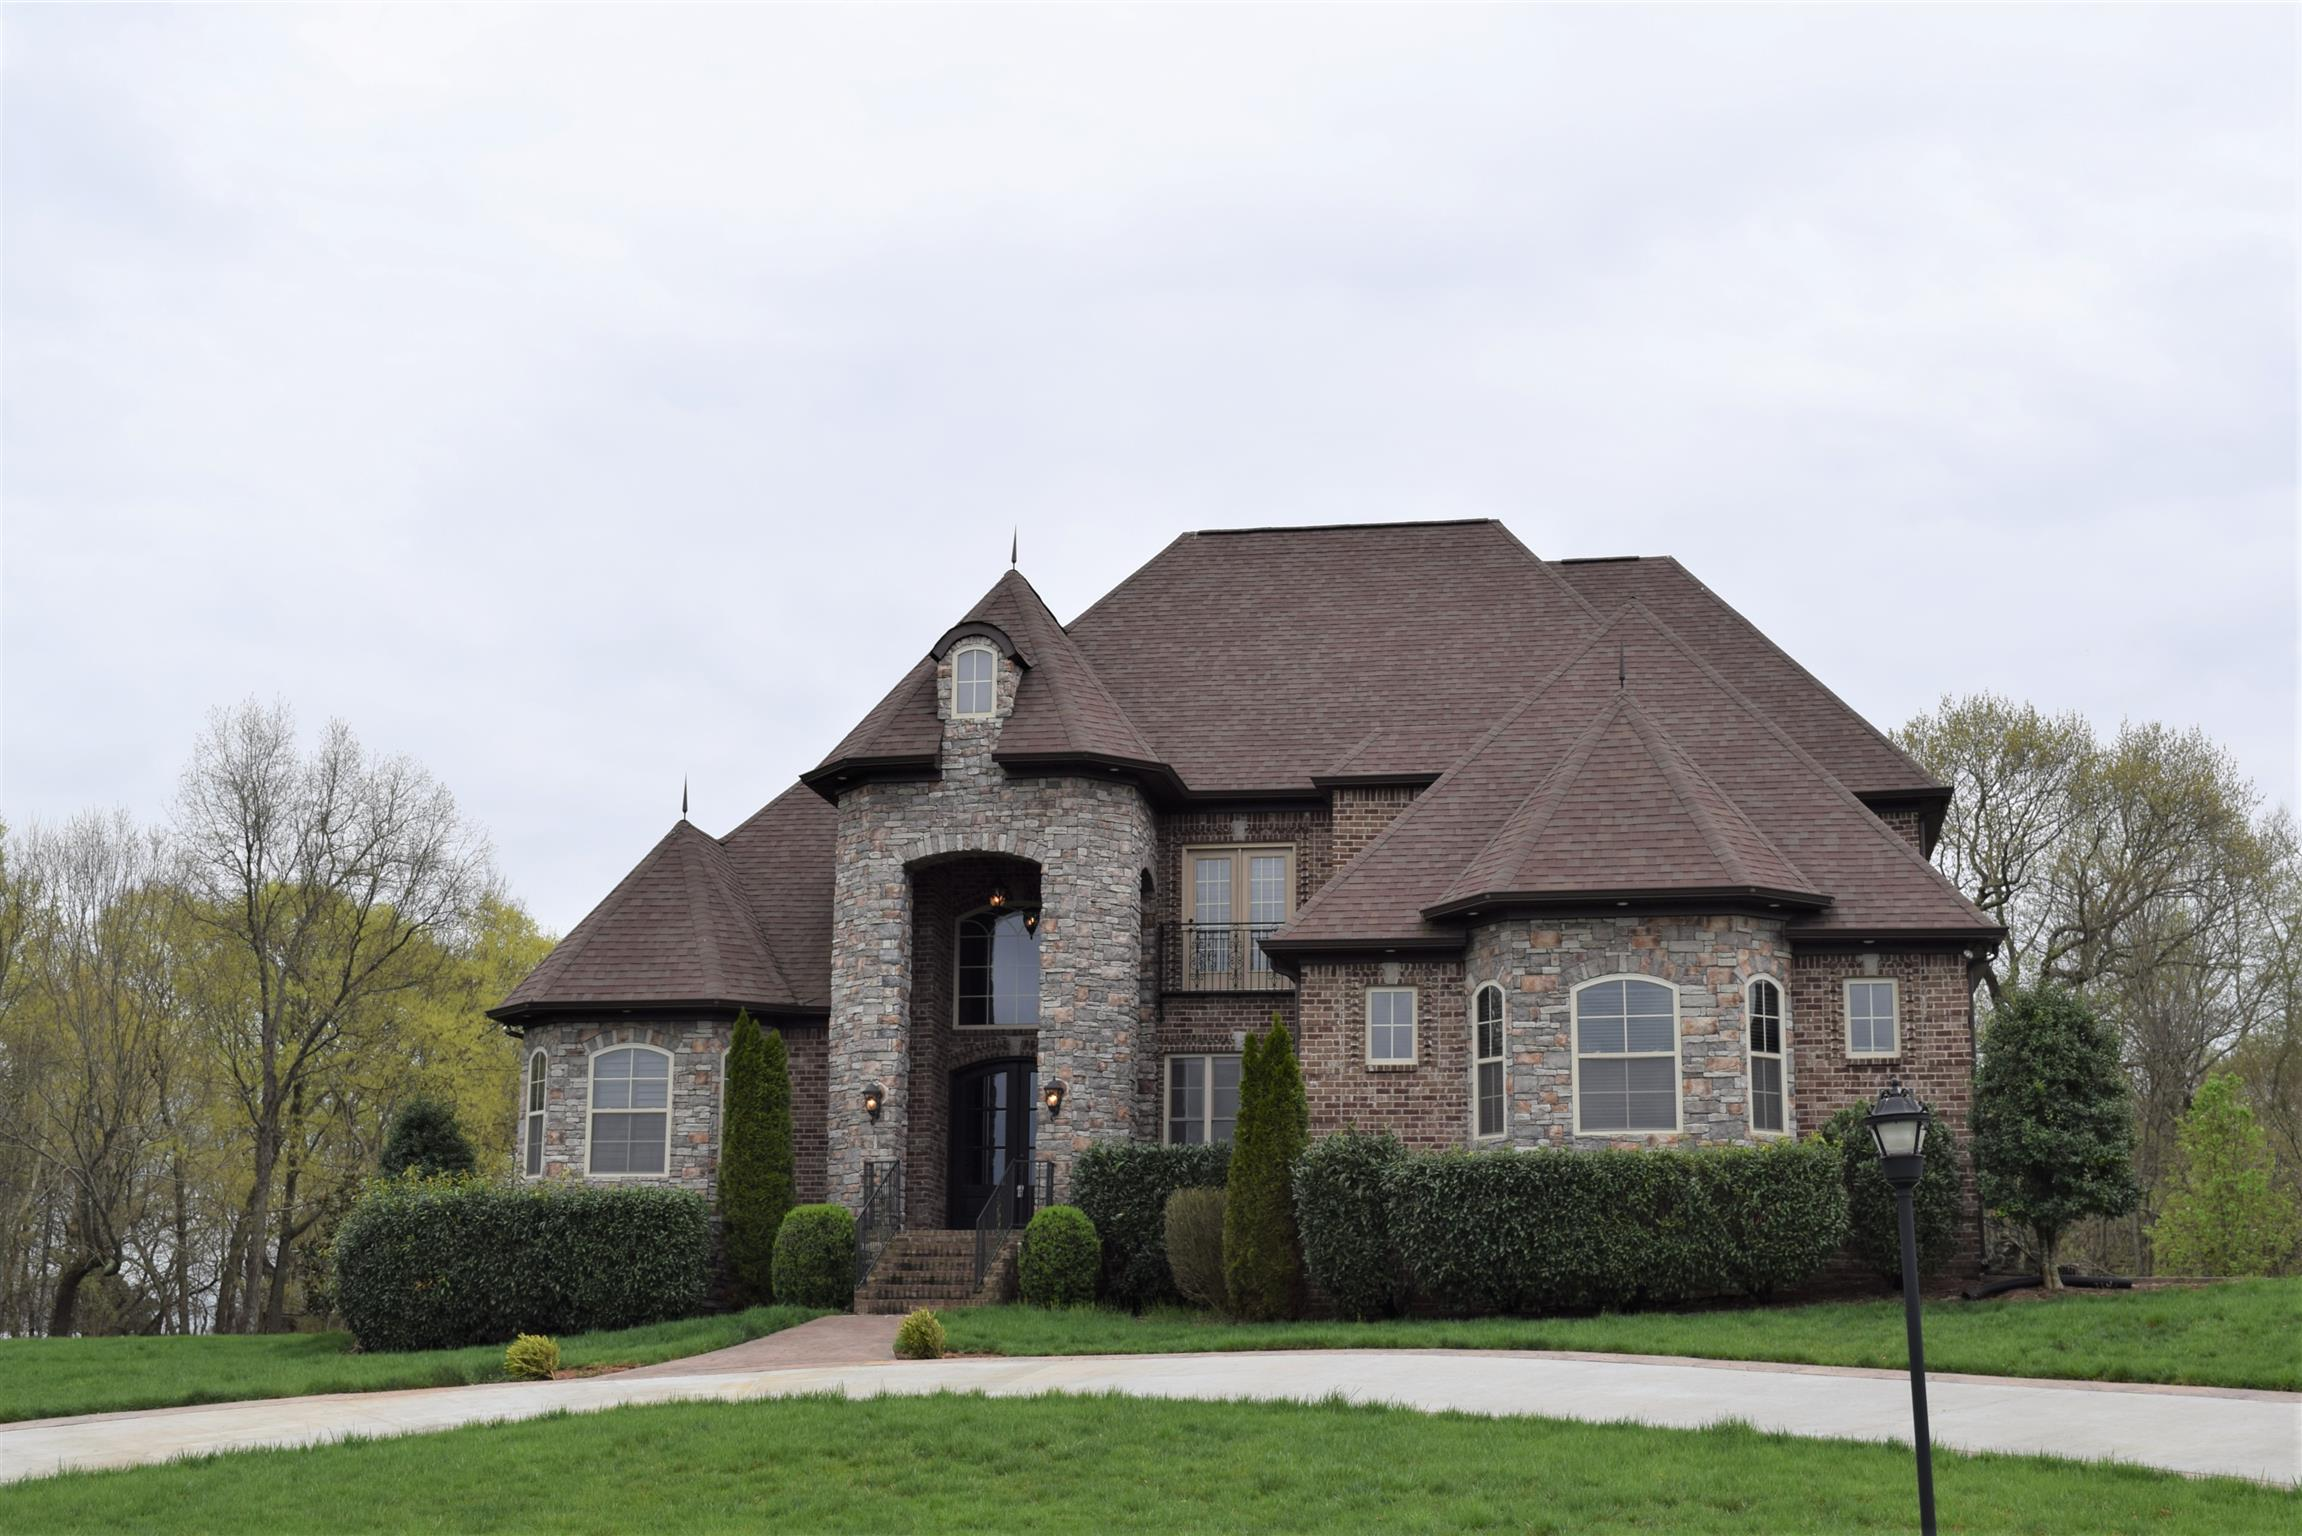 2148 Trieste Trl, Adams, TN 37010 - Adams, TN real estate listing